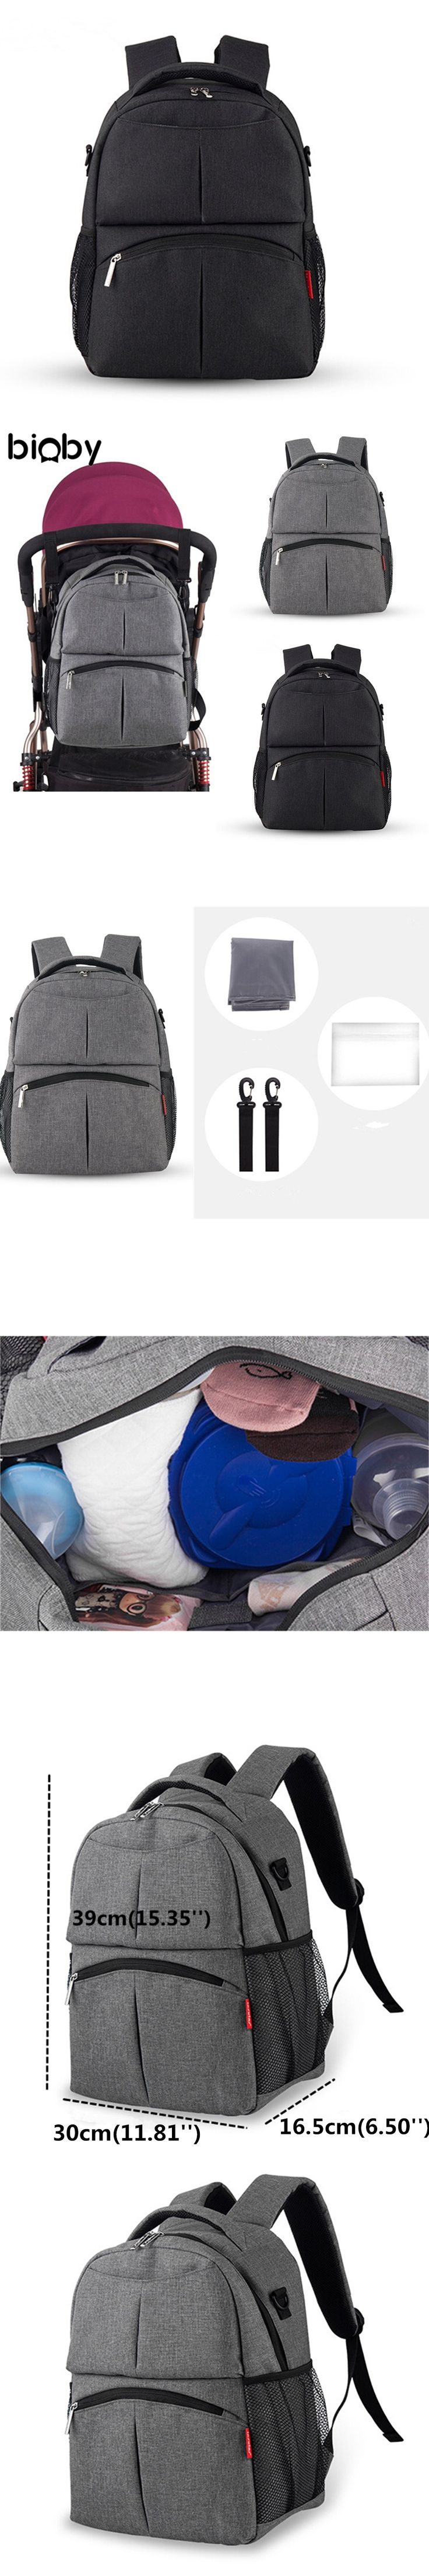 Multipurpose Baby Diaper Backpack Mummy Bag Nappy Changing Bag Mummy Backpack Insulation Bag Outdoor Travel Baby Care Supplies